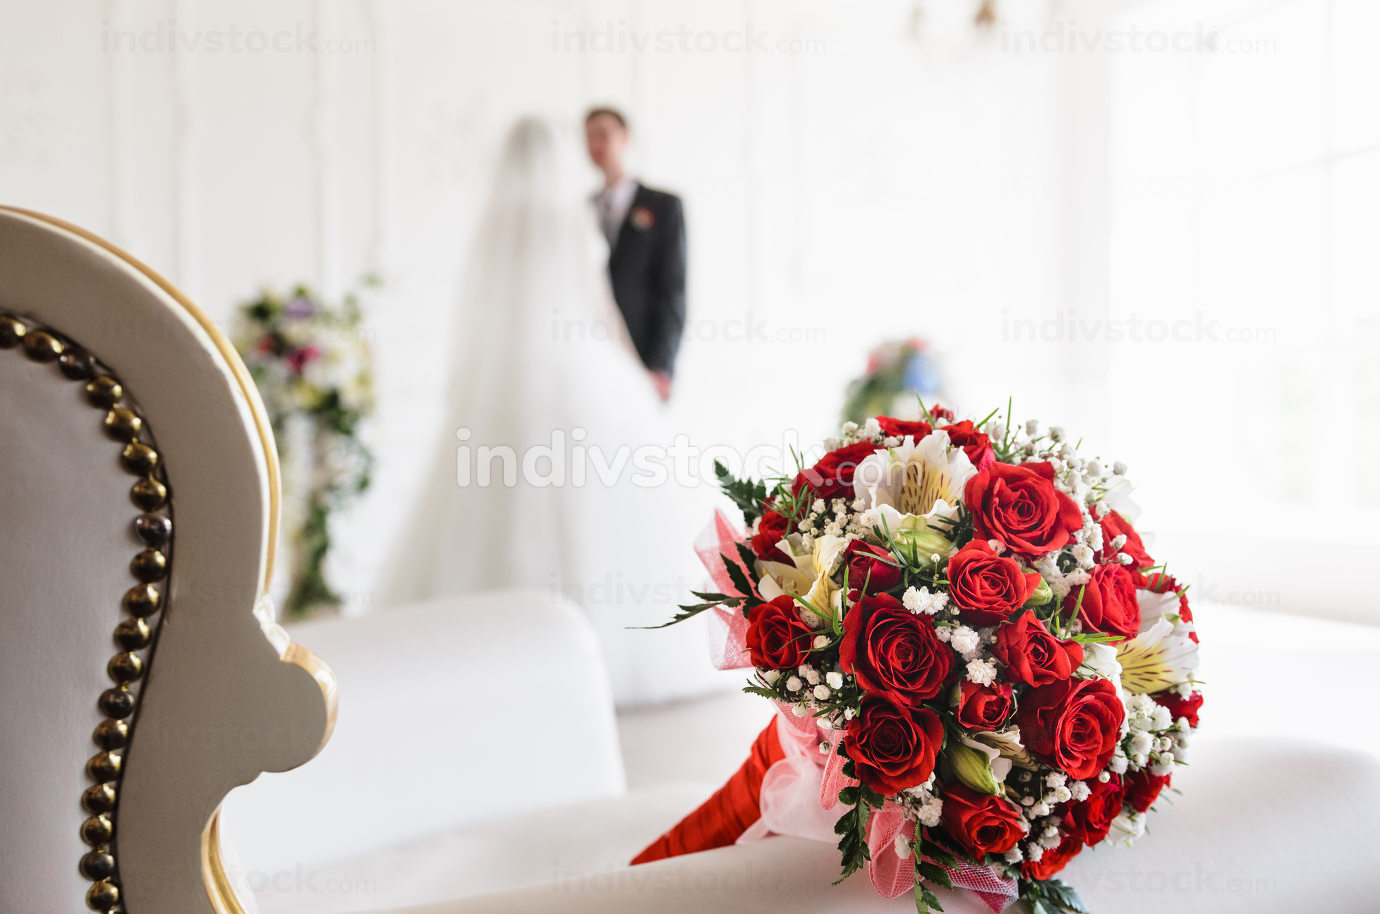 bride's bouquet on the chair